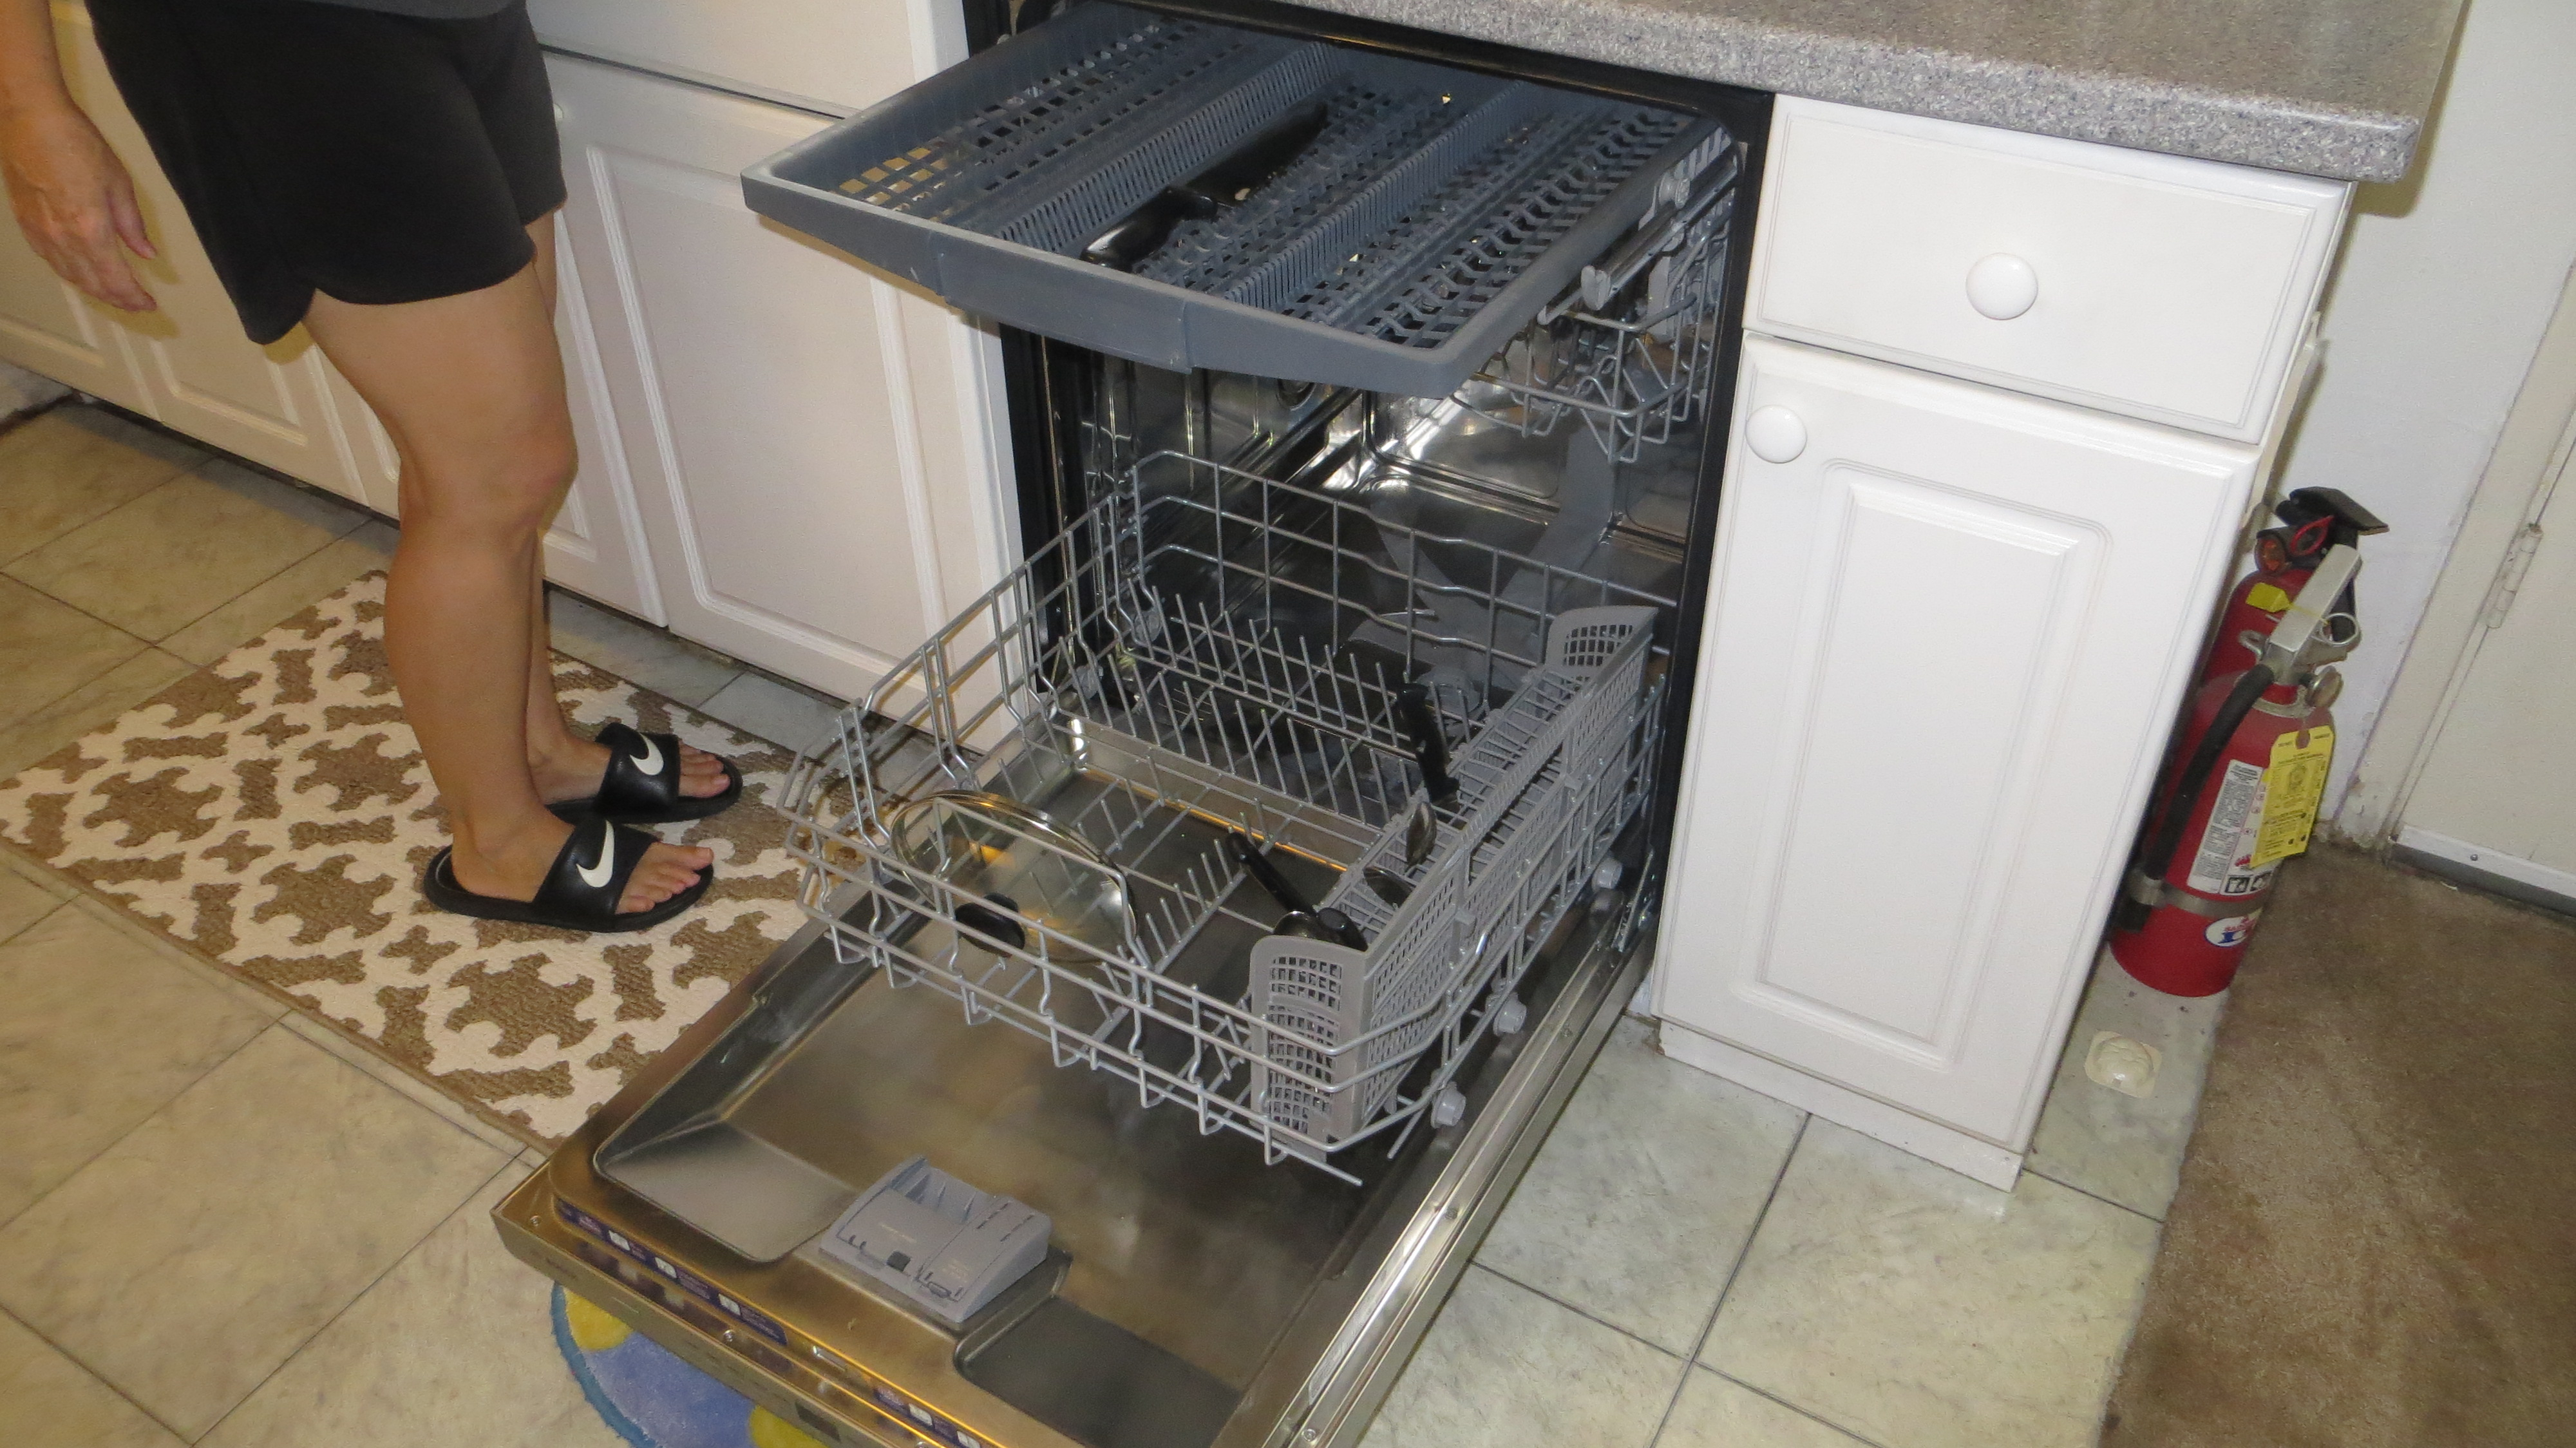 Does a Dishwasher Need to Be On a GFCI Protected Outlet?